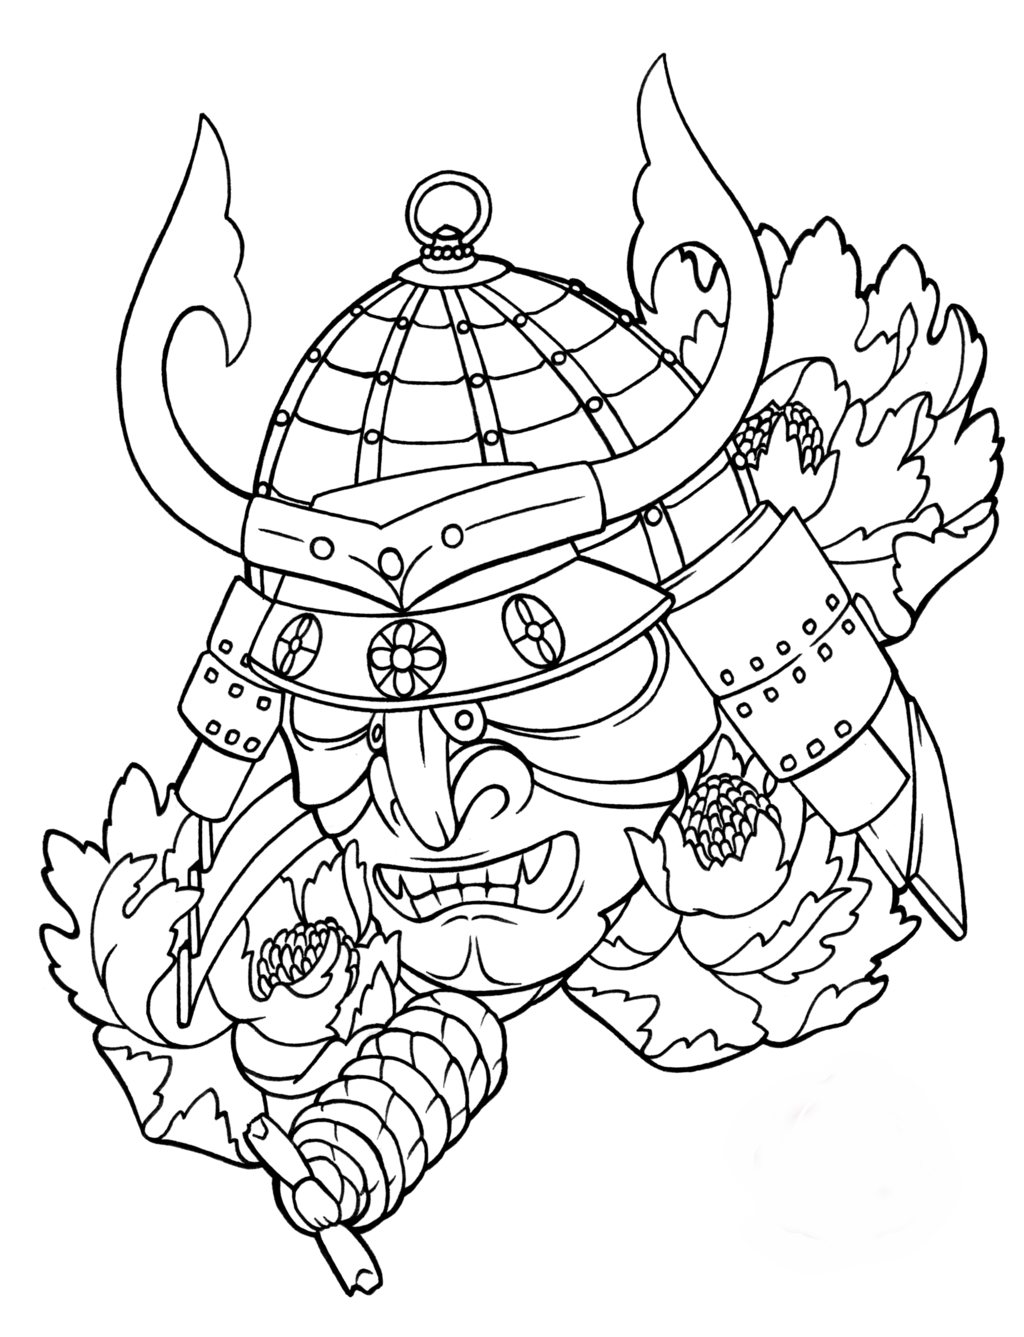 samurai coloring pages samurai coloring pages to download and print for free pages coloring samurai